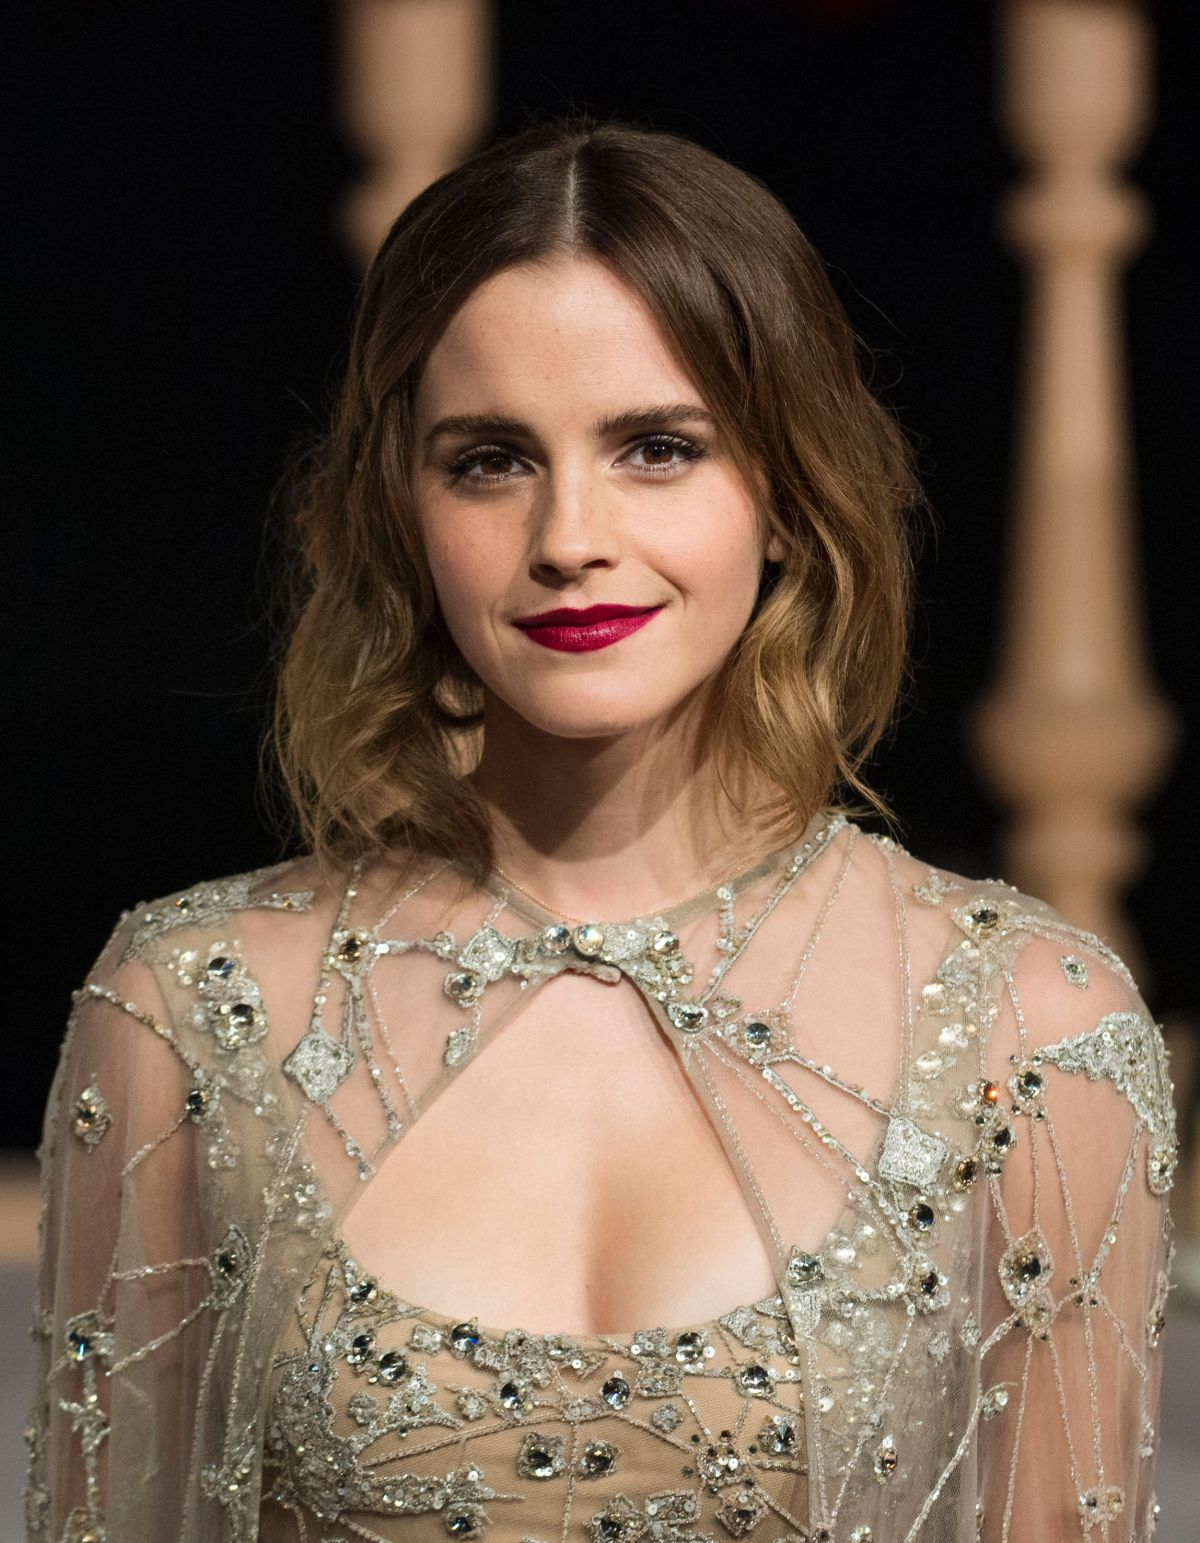 EMMA WATSON Arrives at Beauty and the Beast Premiere in Shanghai 02/27/2017